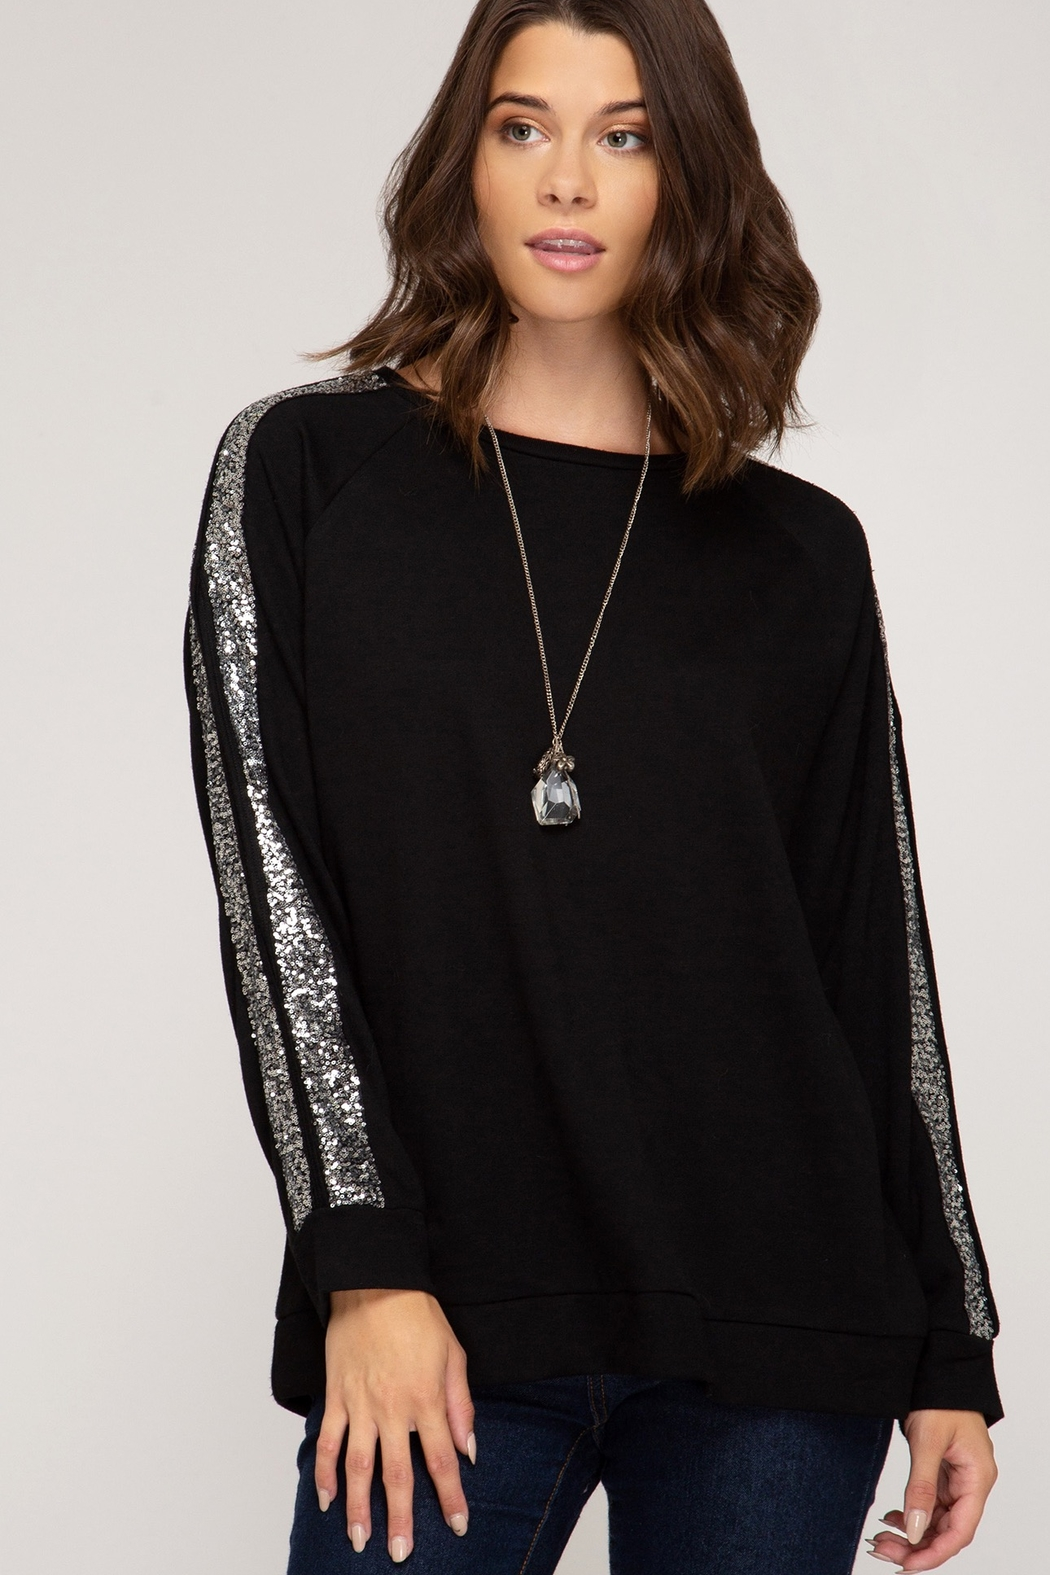 She and Sky LONG SLEEVE KNIT TOP WITH SEQUIN TRIM AND SLEEVE SLIT DETAILS - Main Image